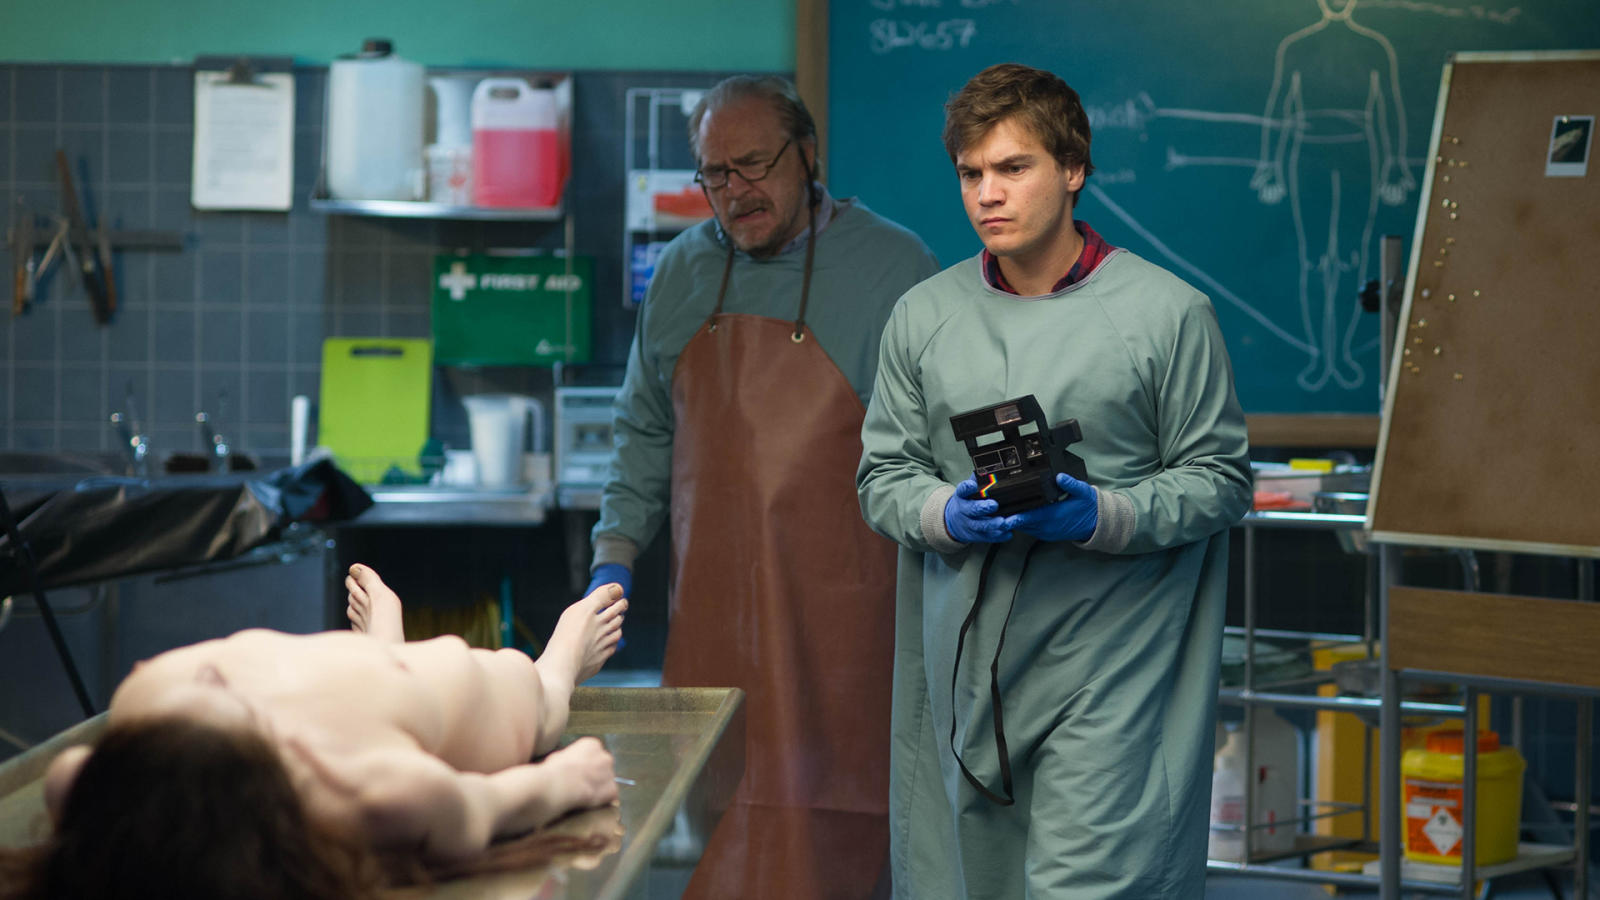 Coroner Brian Cox and son Emile Hirsch examine the corpse of Jane Doe (Olwen Kelly) in The Autopsy of Jane Doe (2016)